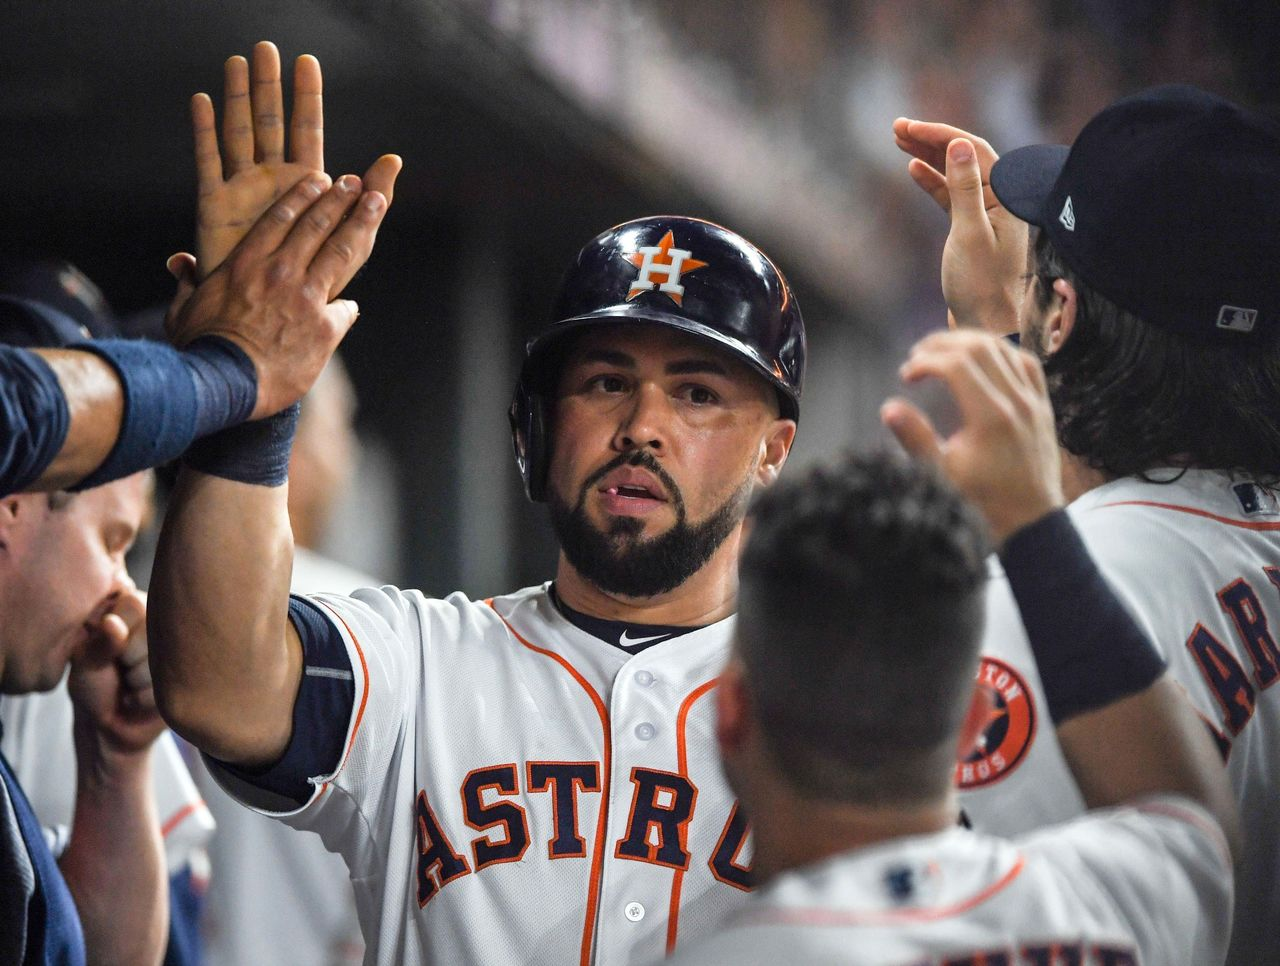 Cropped 2017 06 13t020324z 72854656 nocid rtrmadp 3 mlb texas rangers at houston astros